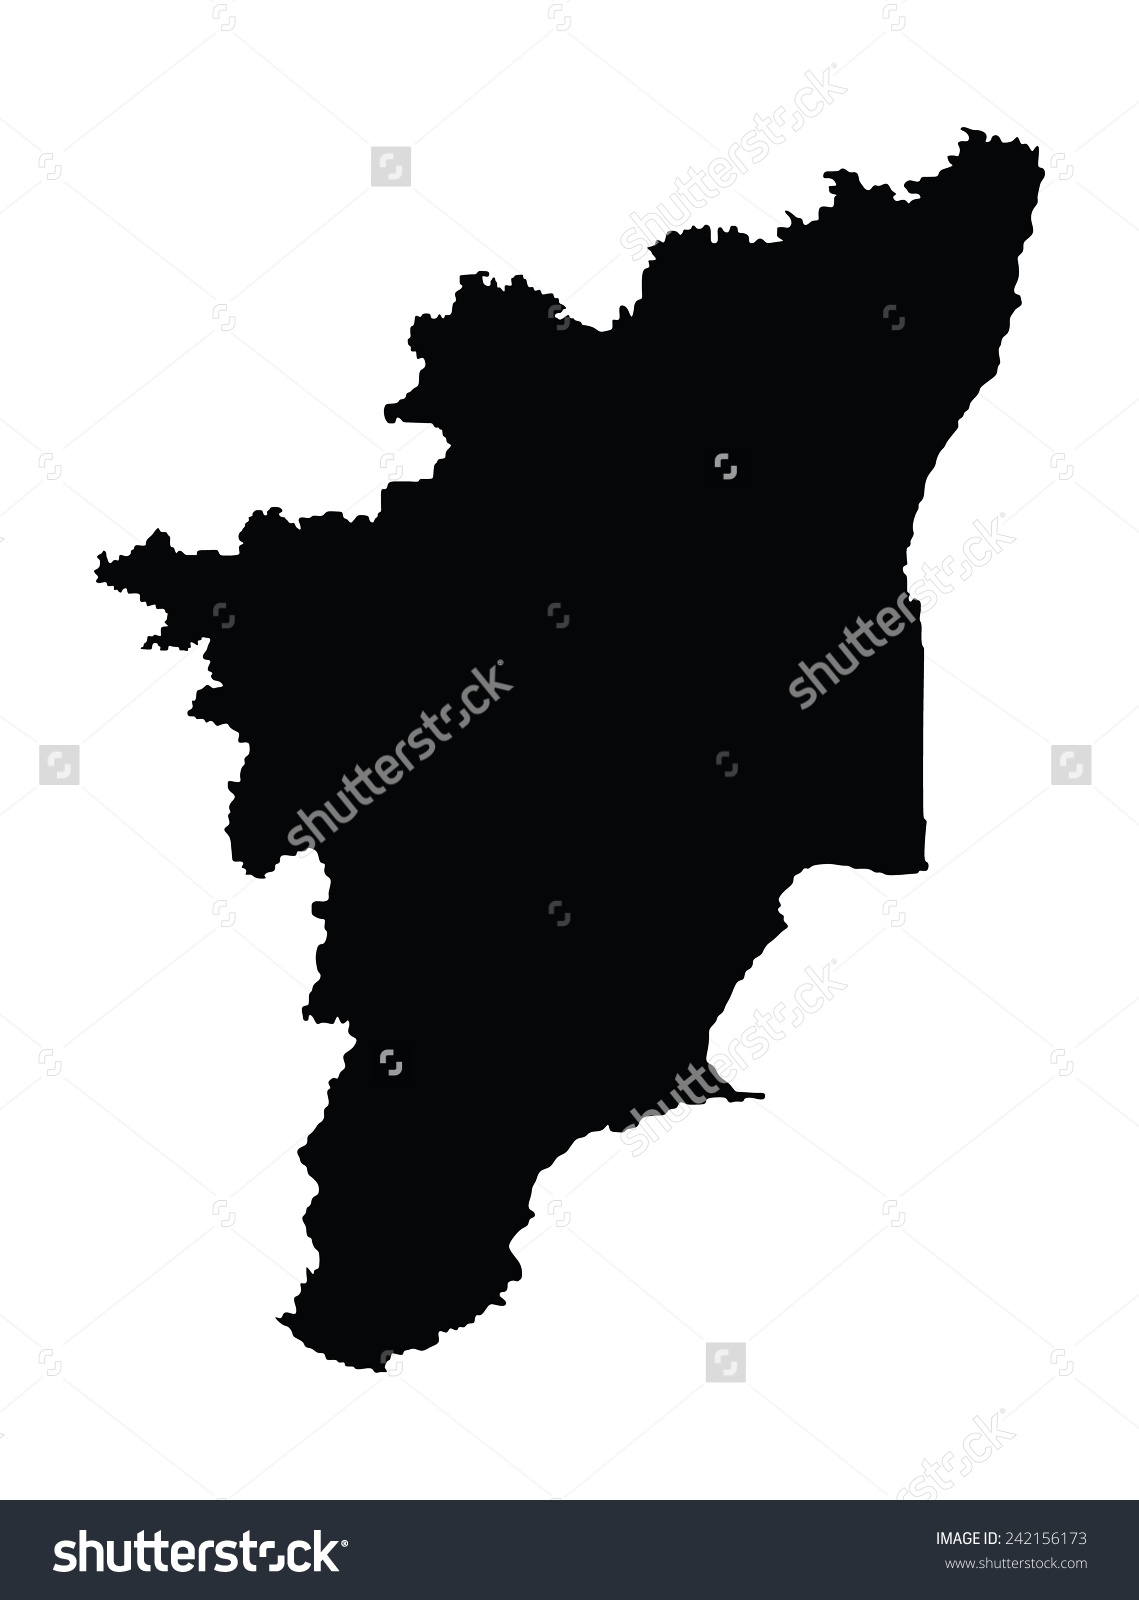 Tamil Nadu India Vector Map Isolated Stock Vector 242156173.